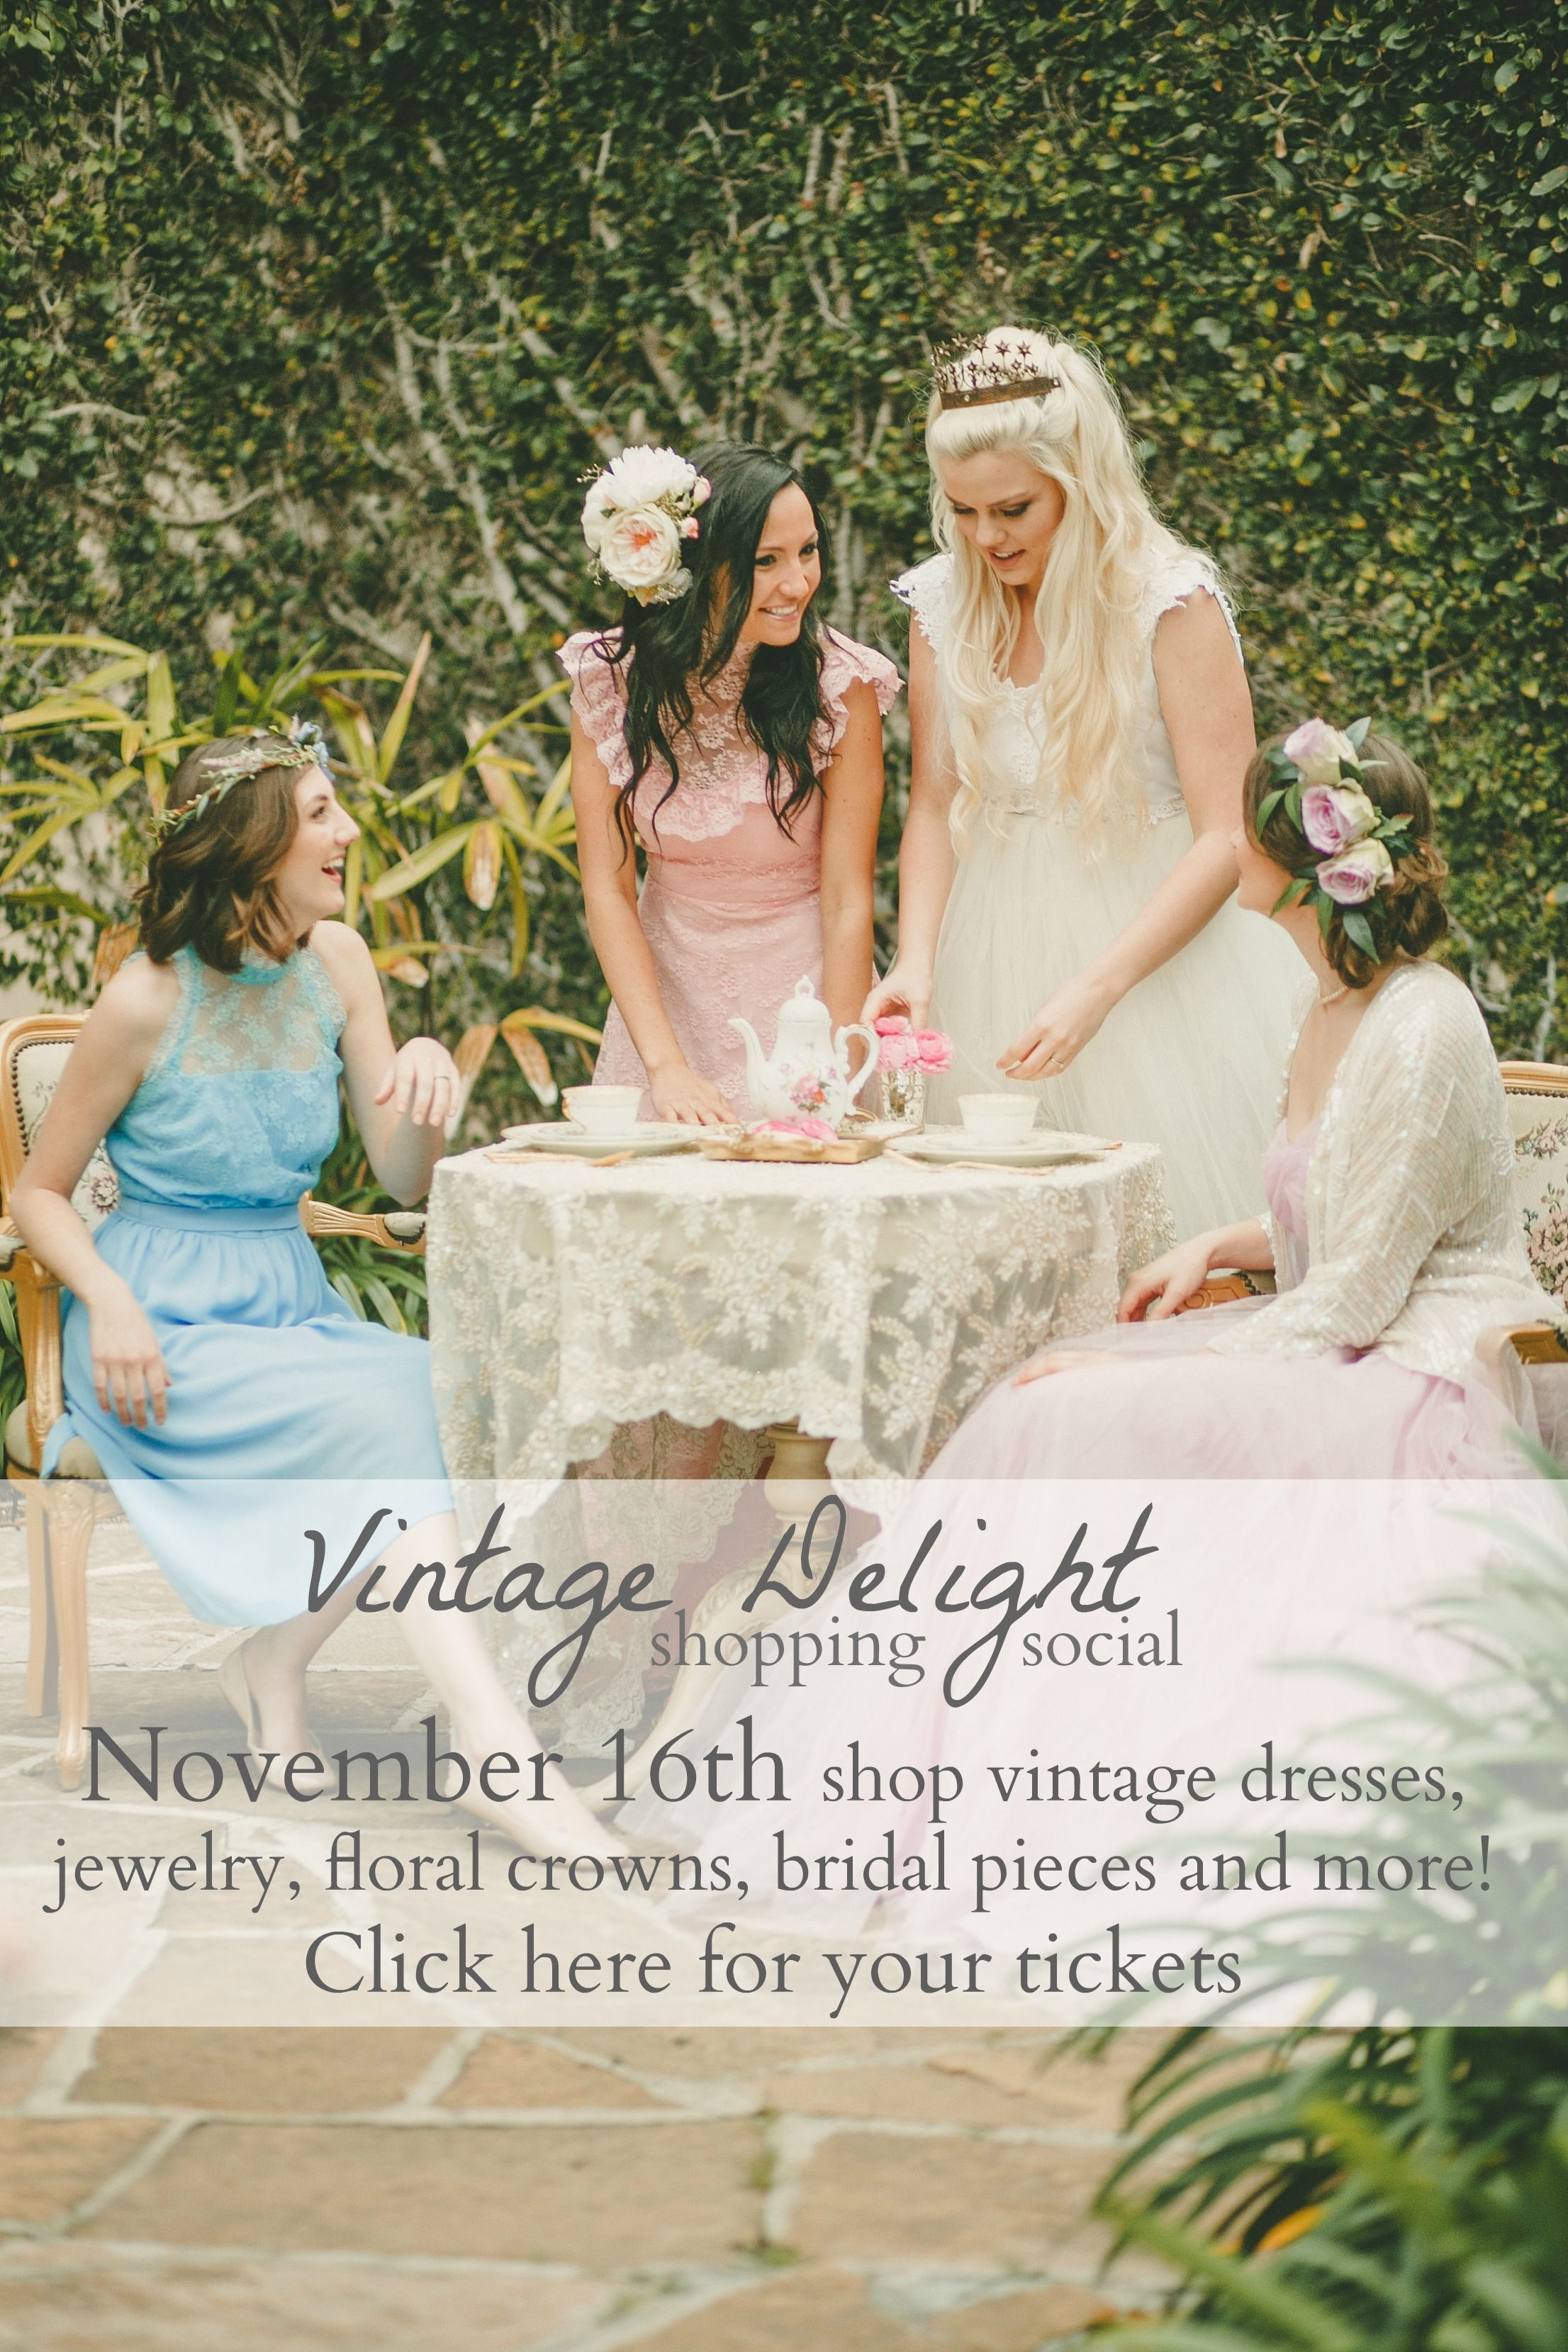 REPIN this now and check out the details! Tag your girlfriends and make it a fun afternoon! Vintage Delight Shopping Social Event hosted by Chariot Marie, Love Sparkle Pretty, Etablir Shop and Mel Scouts with yummy ice cream provided by Mini Scoops! Get your tickets for just $6 which includes entry, ice cream, raffle entries to win hundreds of dollars in GIVEAWAYS, photo booth and more!! http://vintagedelightsocial.eventbrite.com